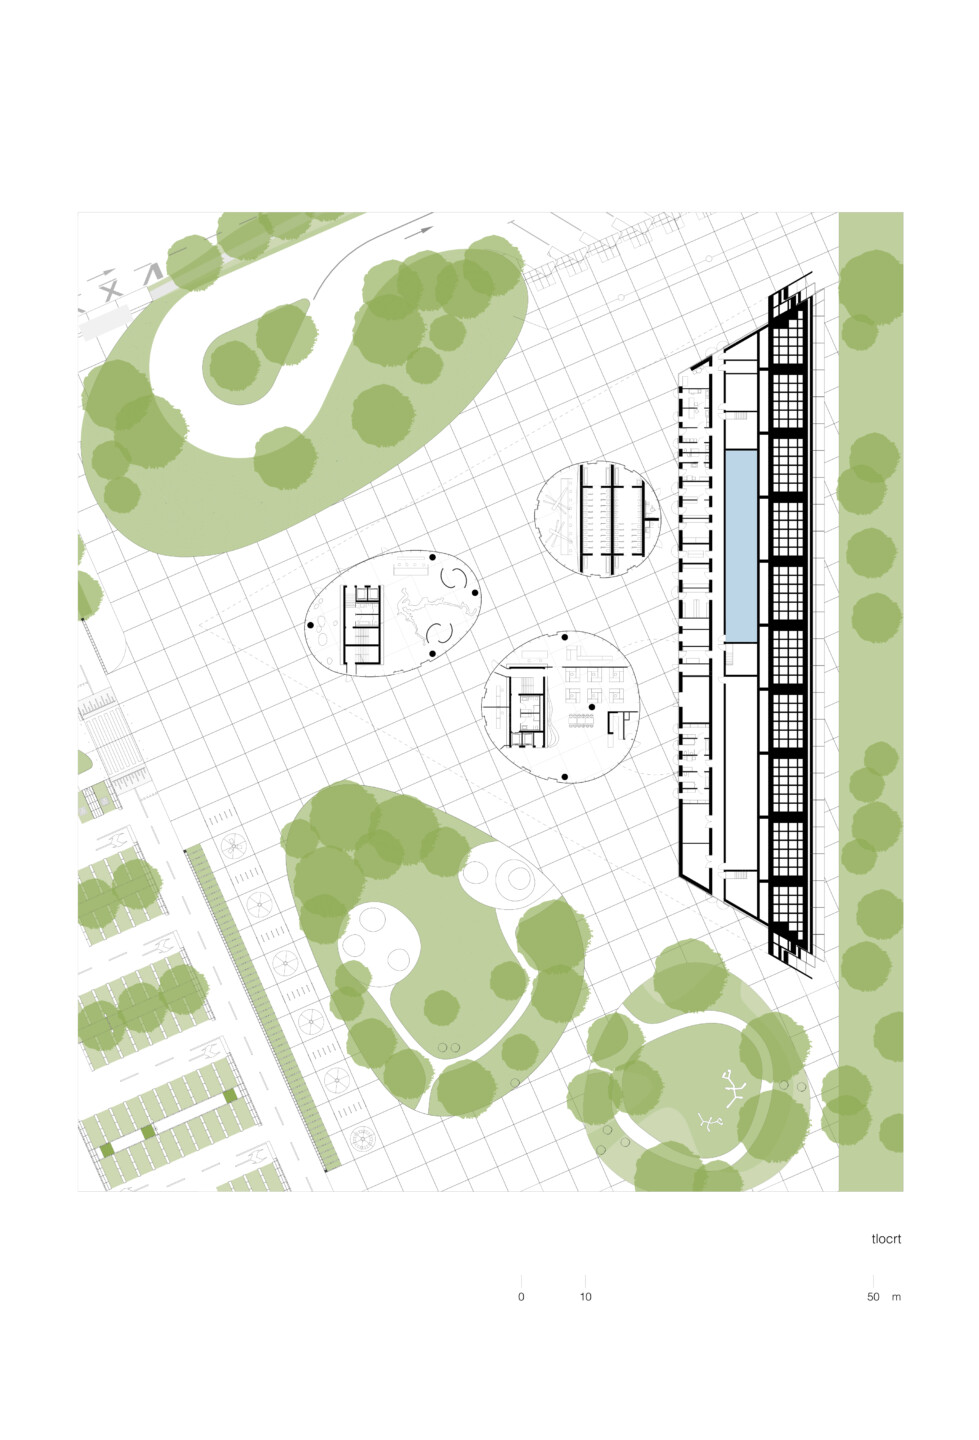 Visitor center Lozovac • ground plan